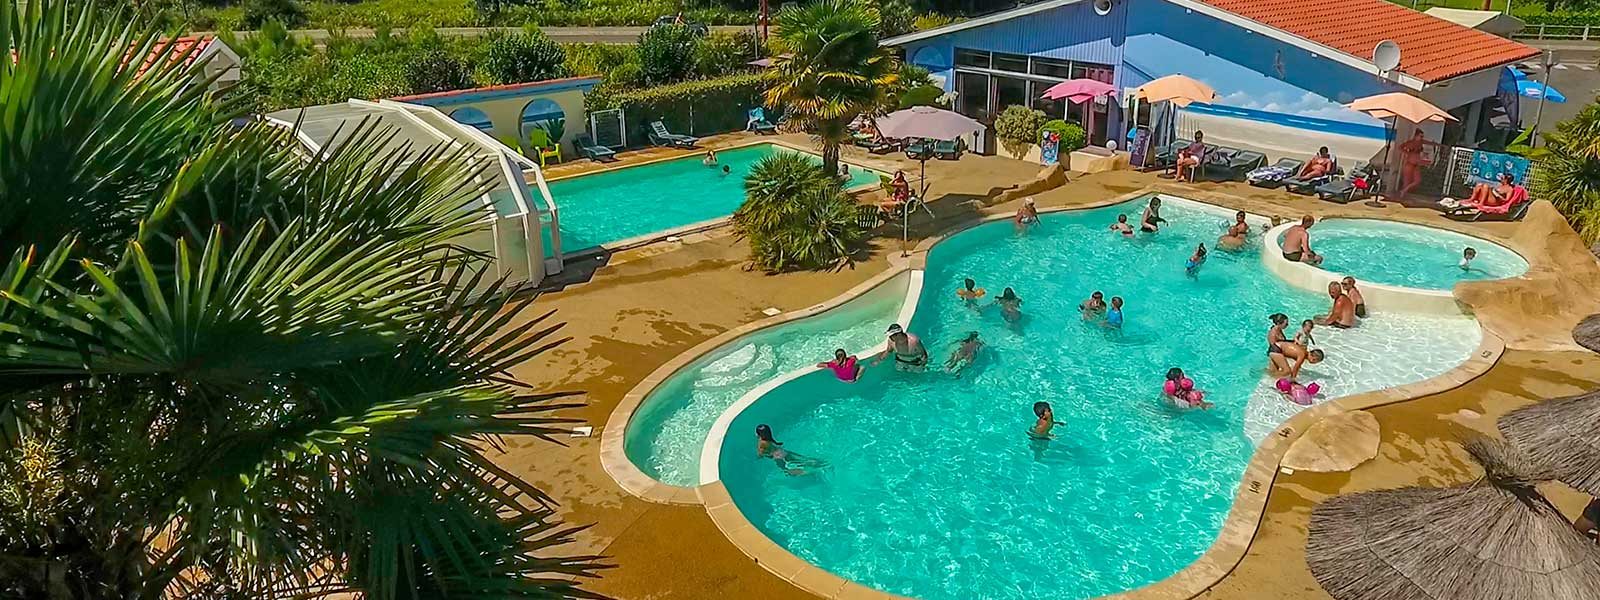 Campsite Landes | Campsite Between Biscarrosse Lake And ... concernant Camping Mimizan Avec Piscine